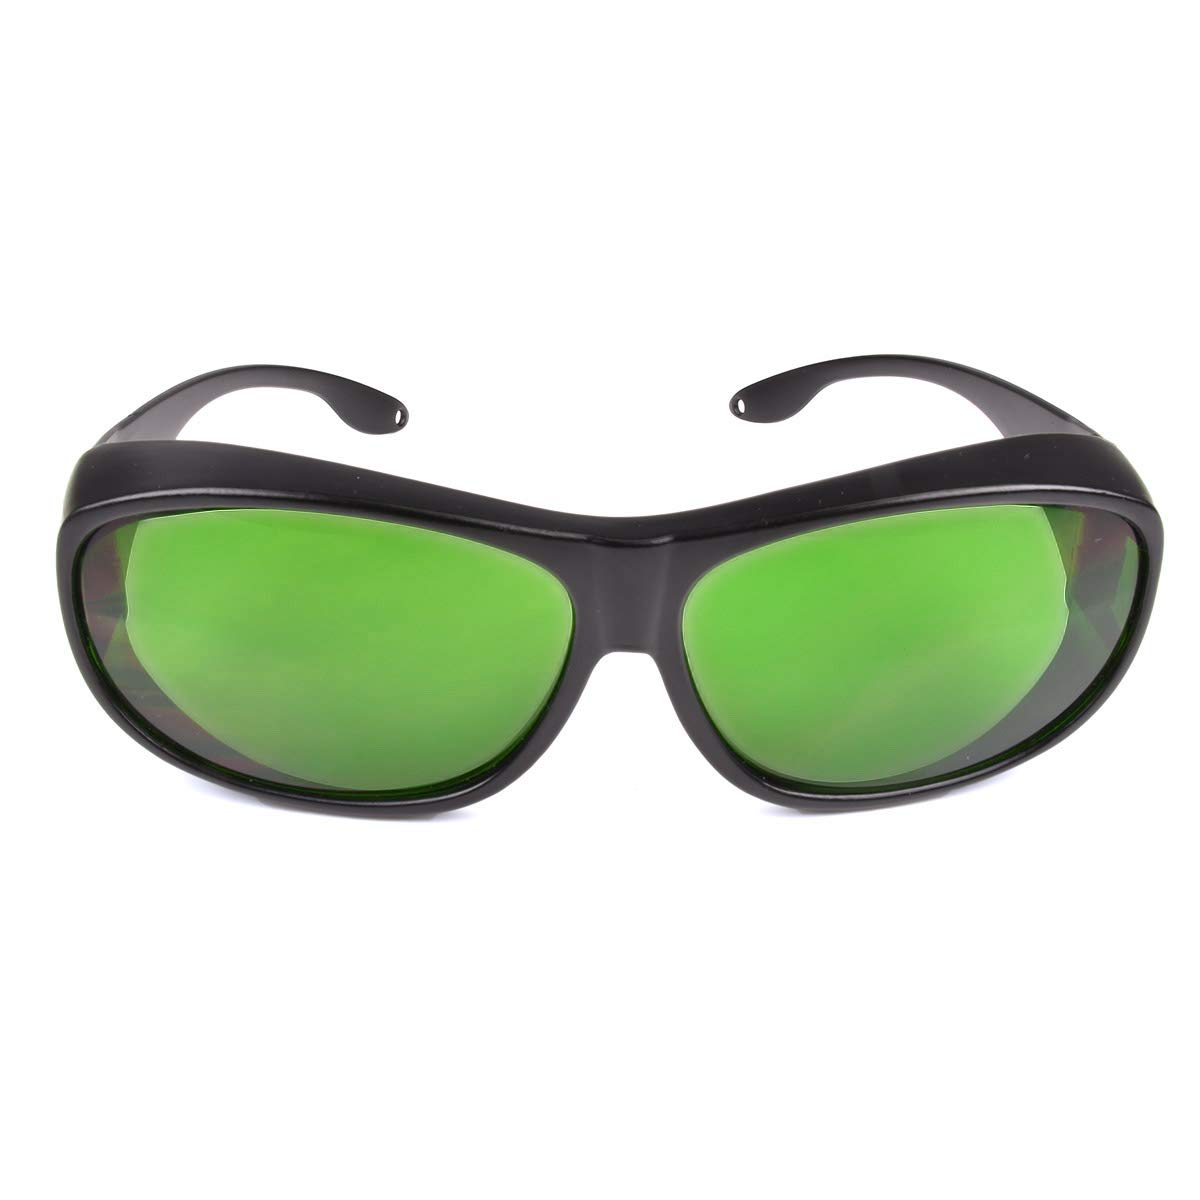 IPL Laser Safety Glasses 190nm-2000nm Wavelength for Beauty & Cosmetology Eye Protection (Black) (Style 4)